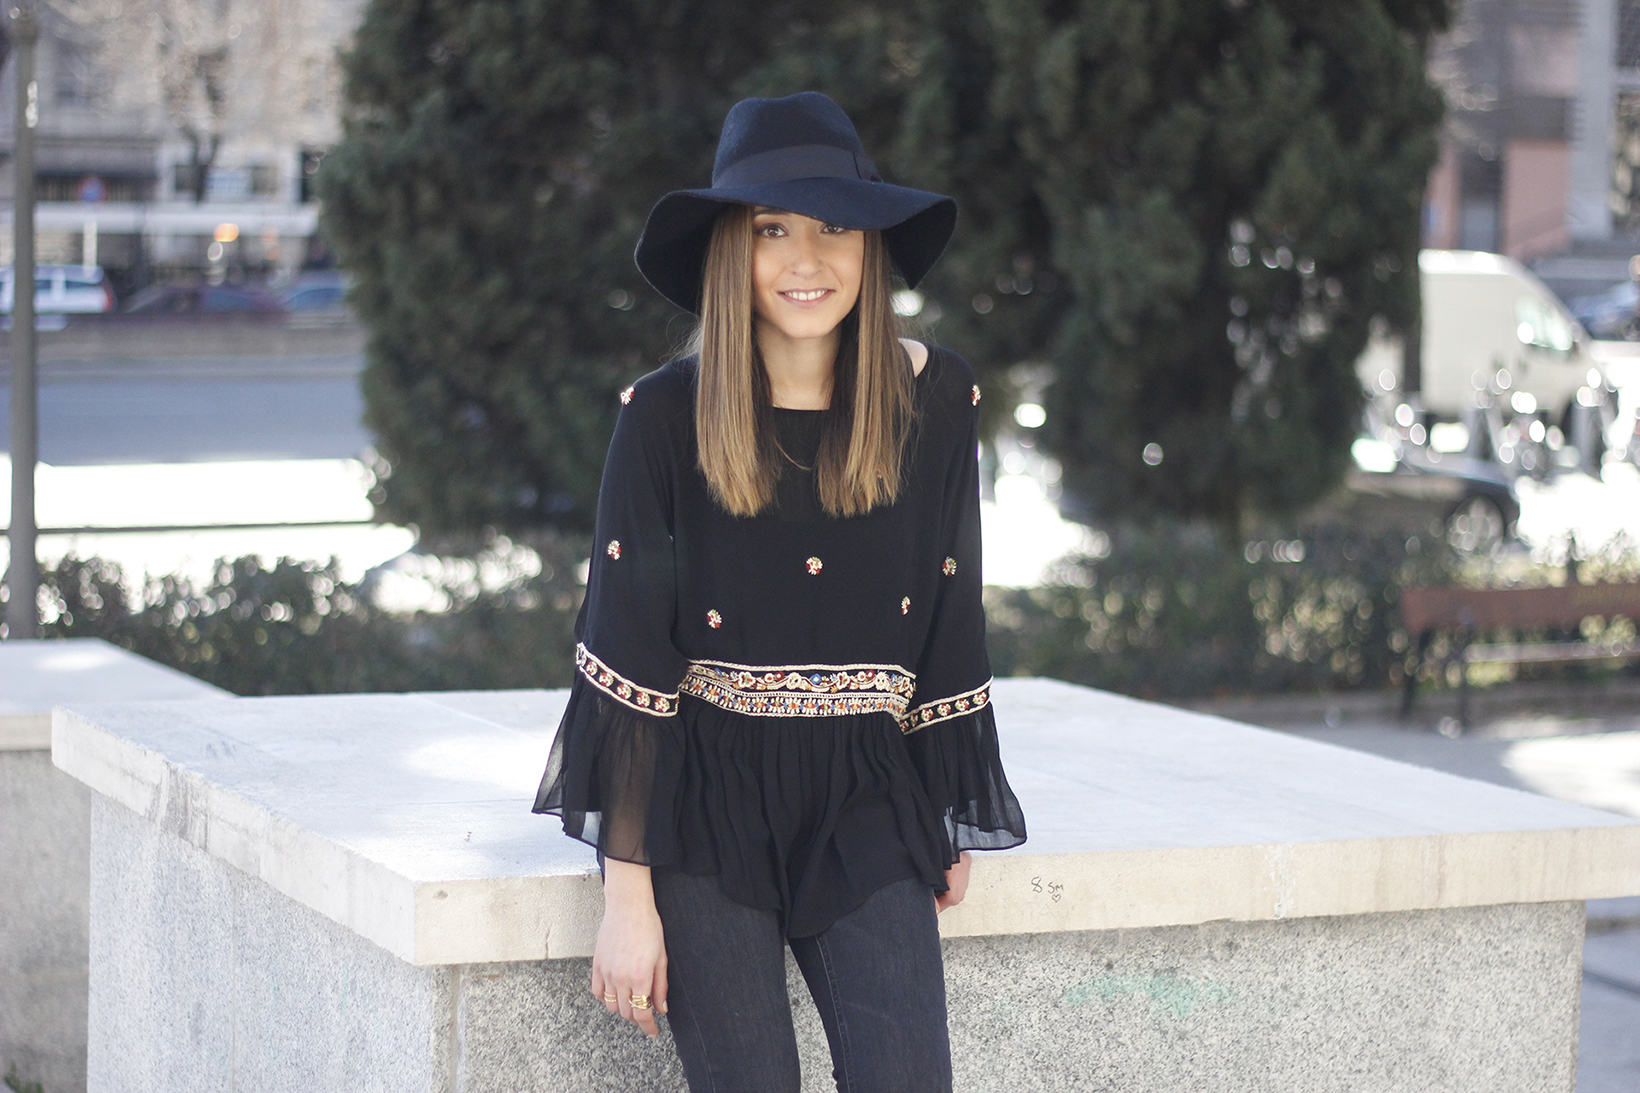 flared jeans boho blouse hat accessories outfit fashion08